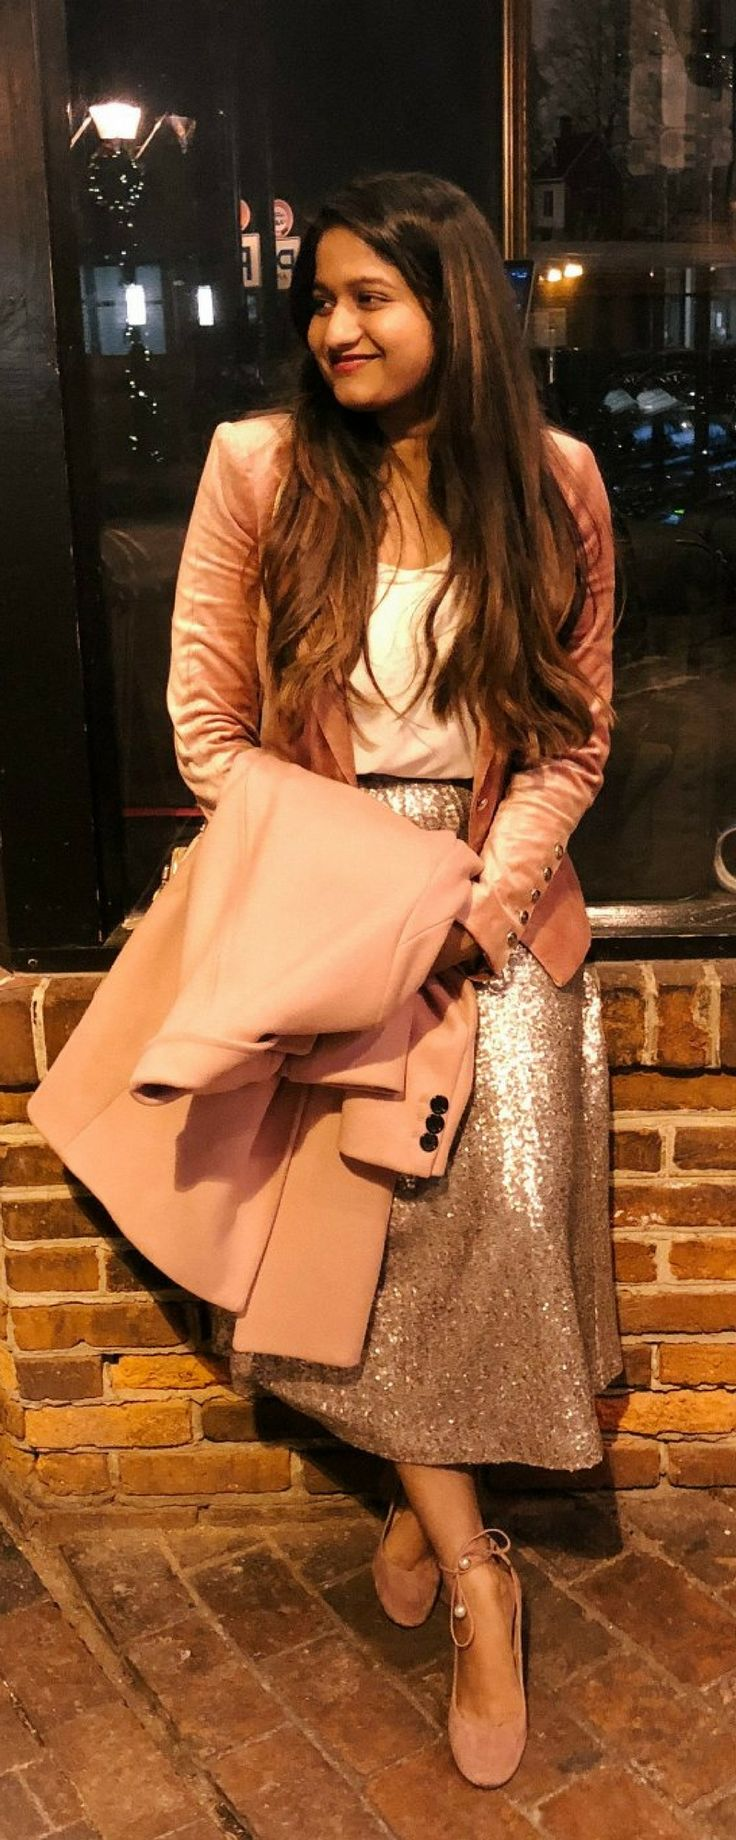 2018 Goals   dreamingloud.com -------------------------------------------- NYE outfit, sequin midi skirt, velvet pink blazer, cream silk blouse, kate spade gena heels in vintage rose, night party outfits, lady like outfit, chic party outfit ideas, boden sequin skirt, elegant and neat dressing, skirt with blazer